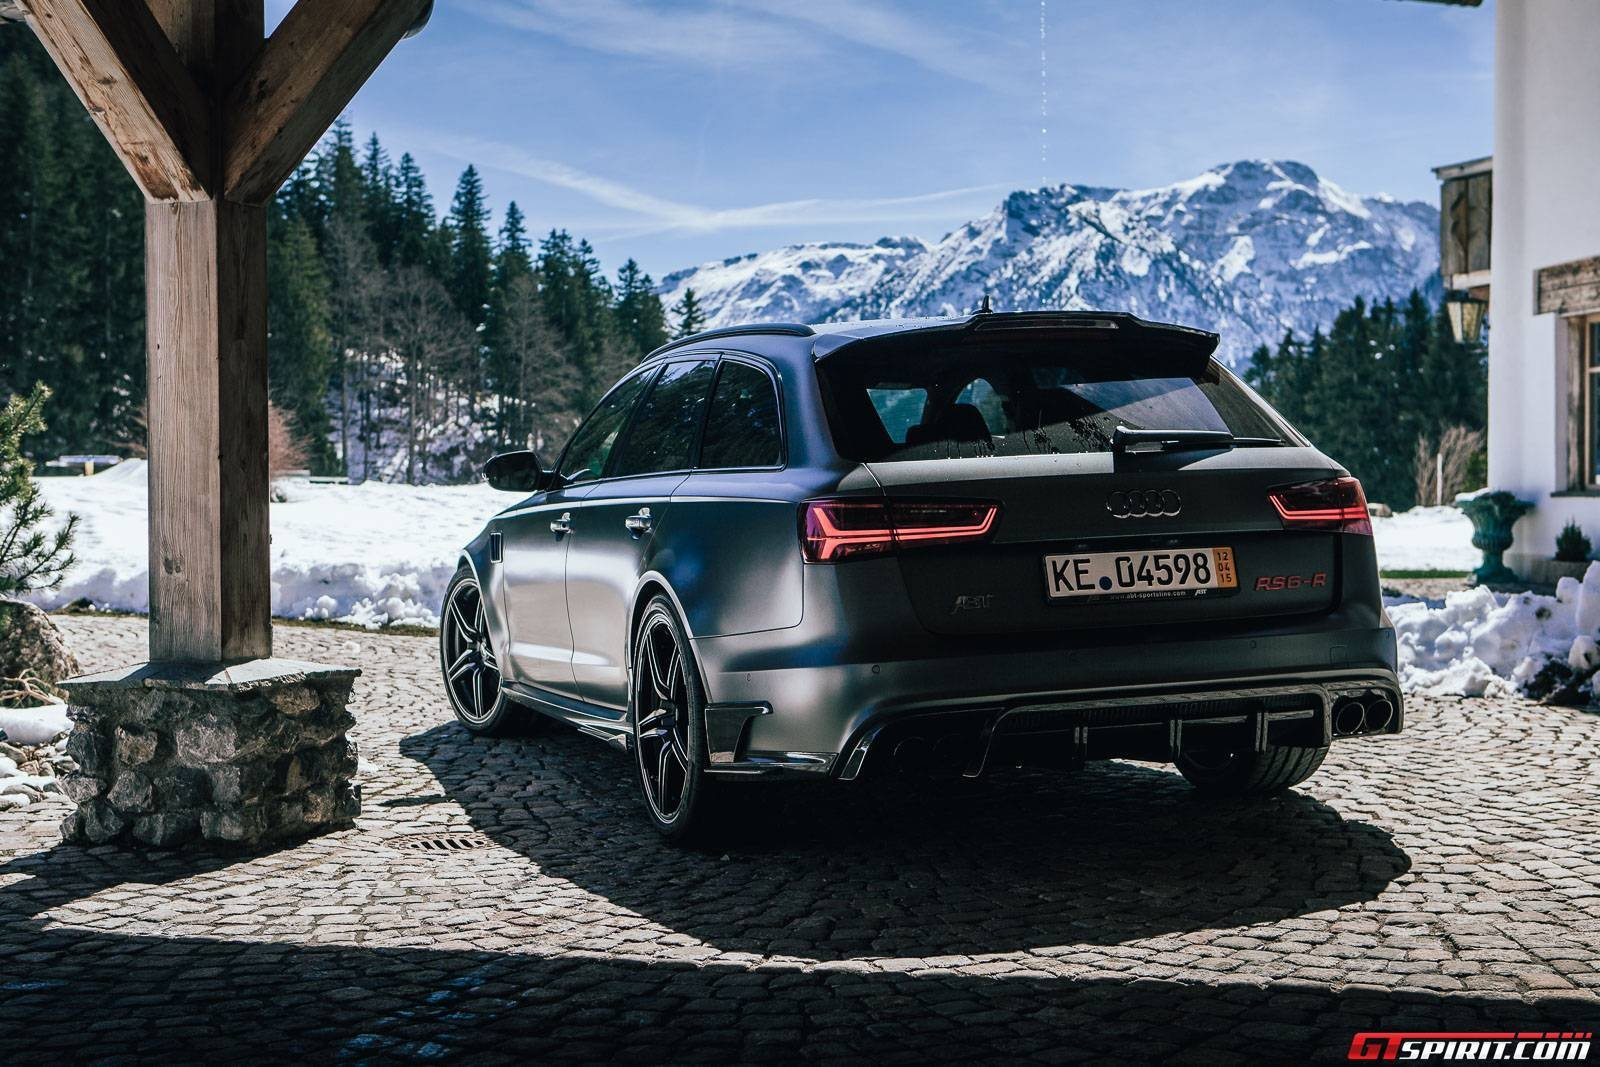 1600x1067 - Audi RS6 Wallpapers 19